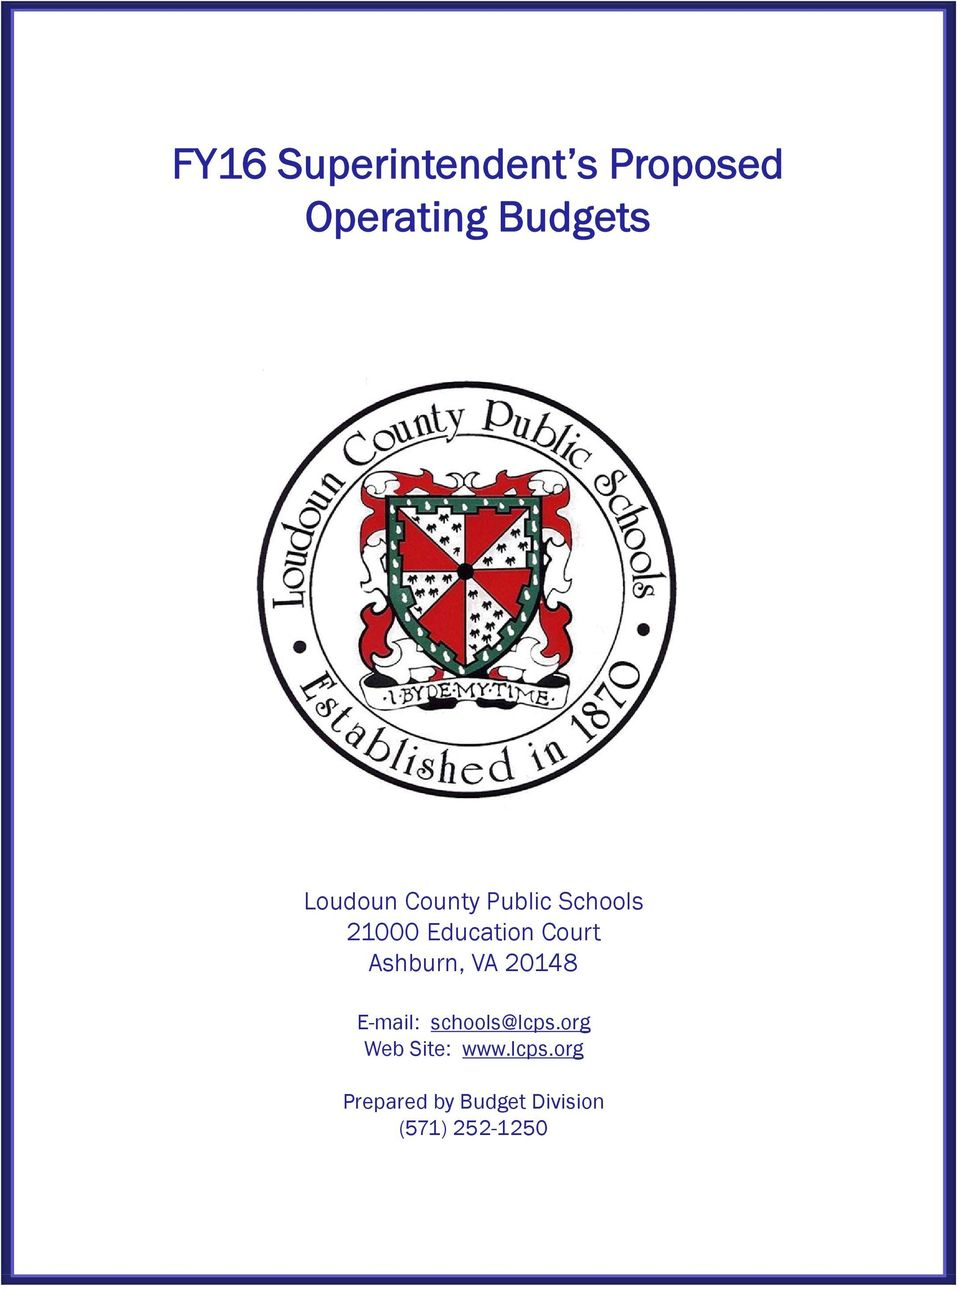 medium resolution of Loudoun County Public Schools FY16 Superintendent s Proposed Operating  Budgets - PDF Free Download